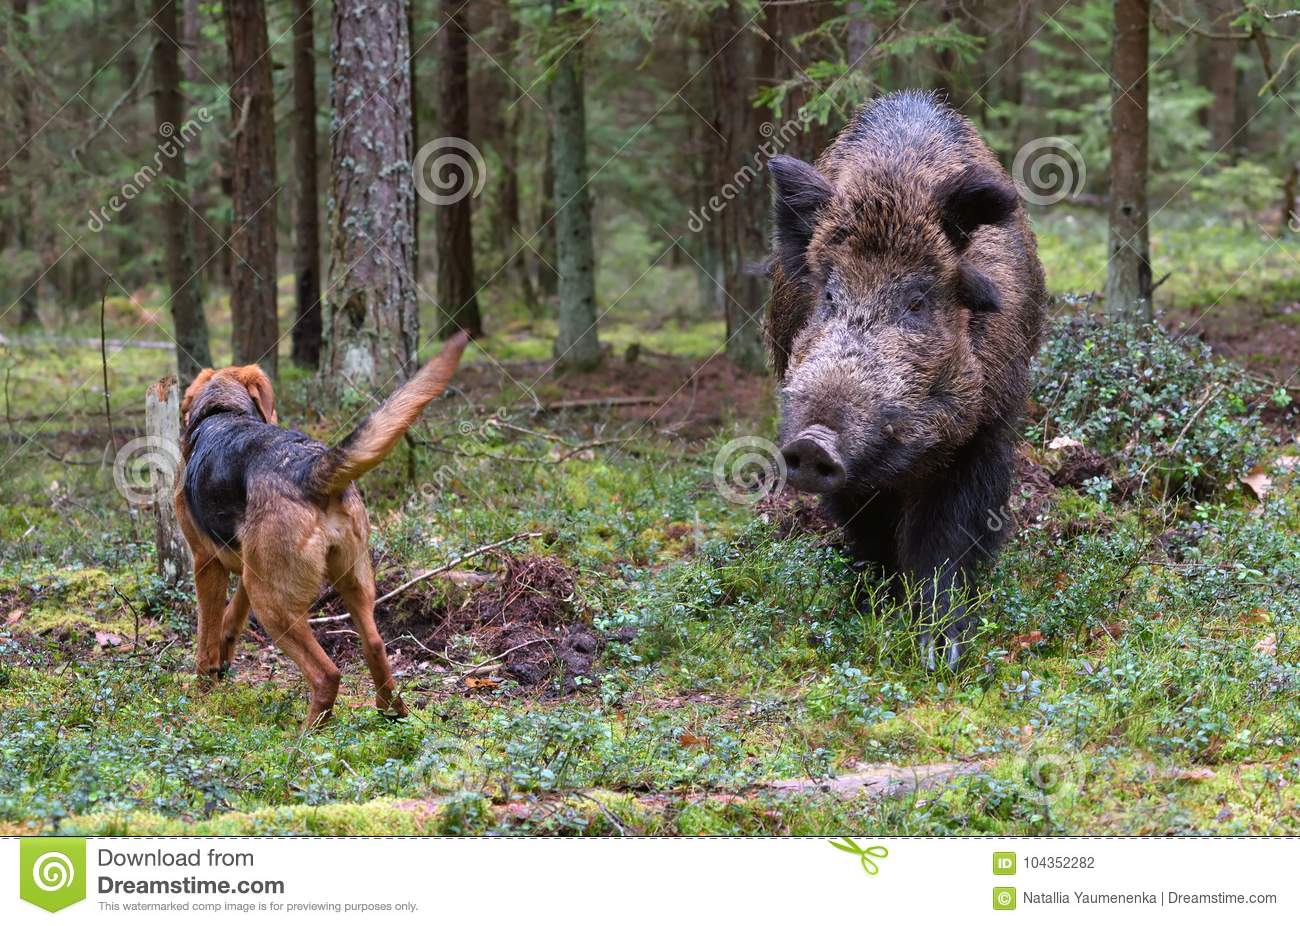 Hunting on wildboar stock photo  Image of booty, reward